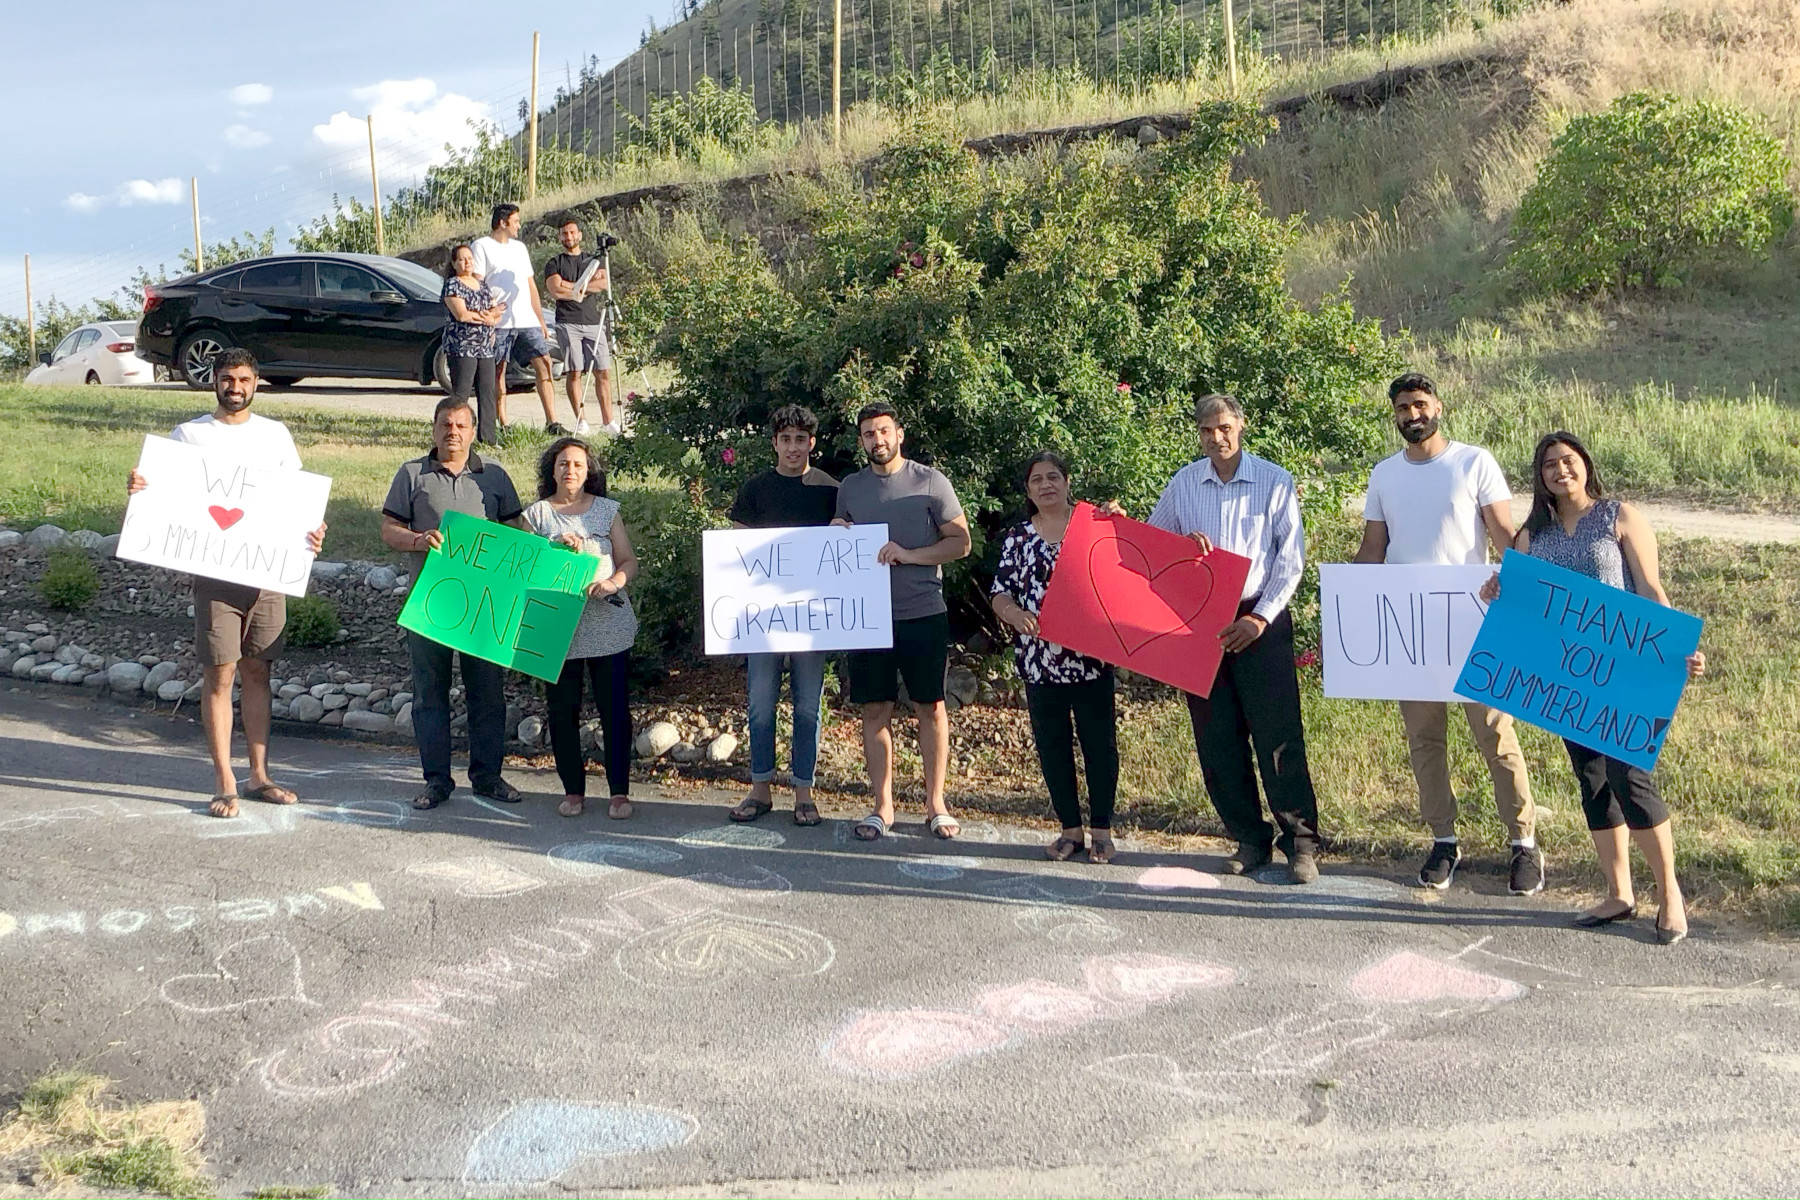 Members of the Lekhi family in Summerland held signs of gratitude on July 16. The family home had been spray painted with racist graffiti earlier in the week. A parade on July 16 was held as a show of support for the Indo-Canadian family. (John Arendt - Summerland Review)